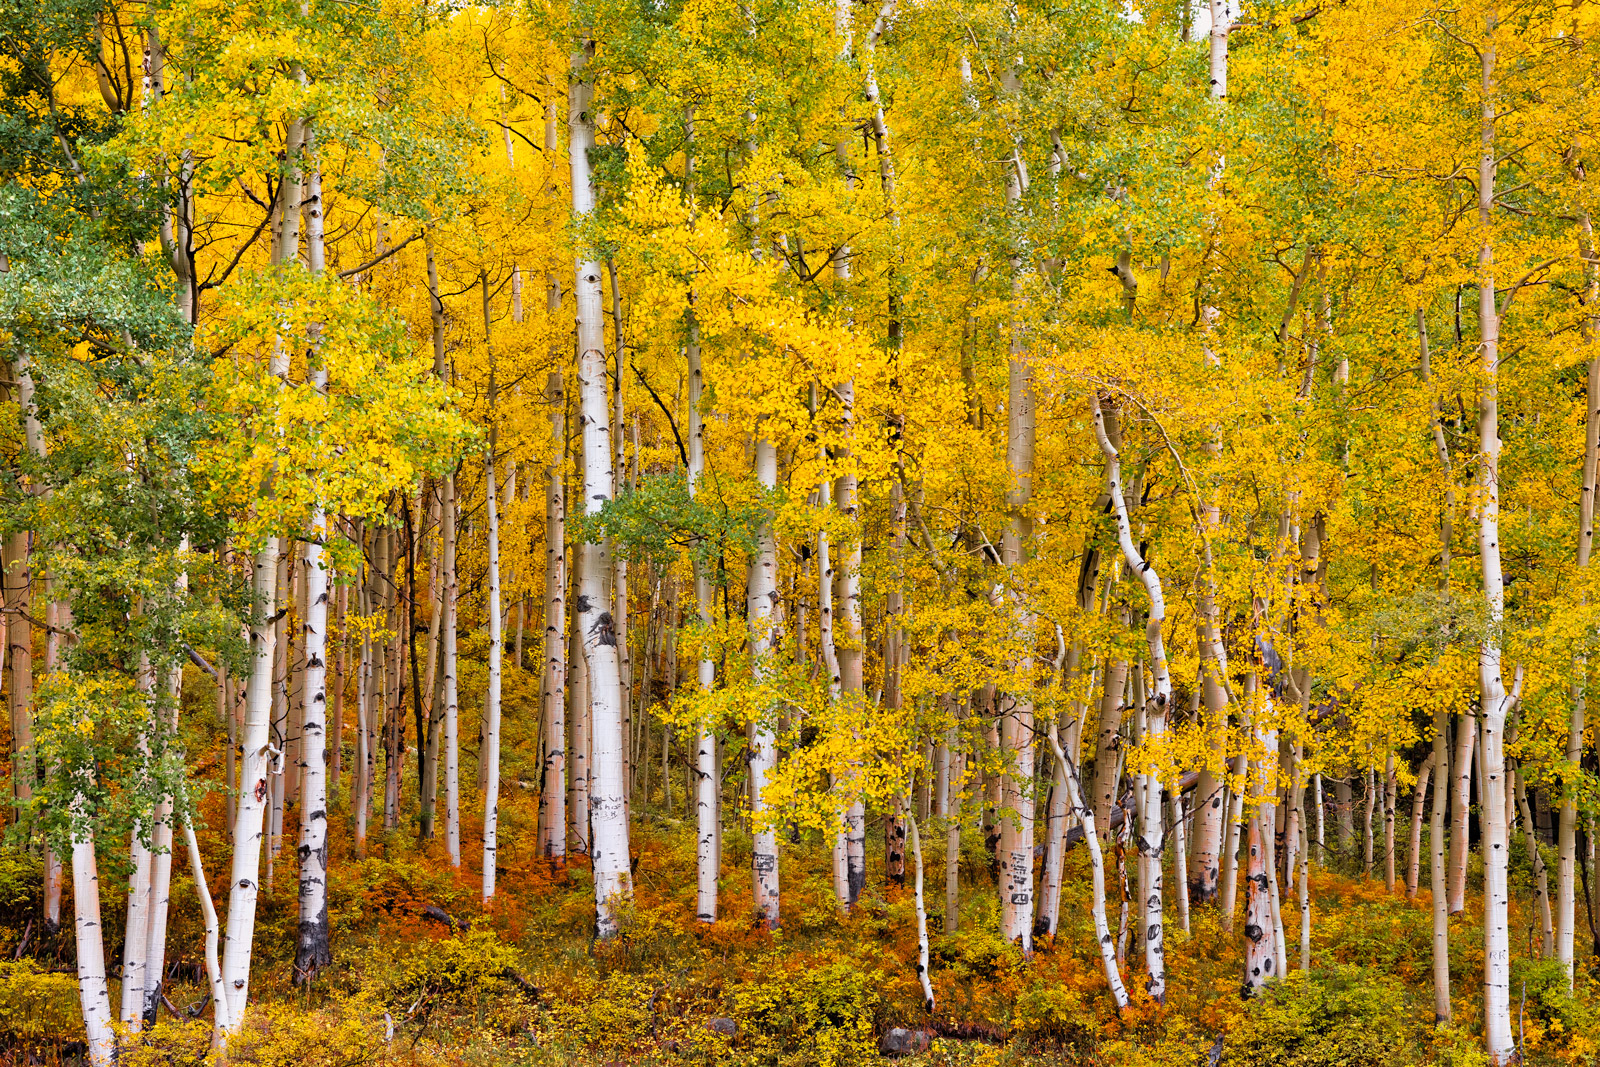 A Limited Edition, Fine Art photograph of Aspen trees in the fall showing off their fall colors above a colorful ground cover...